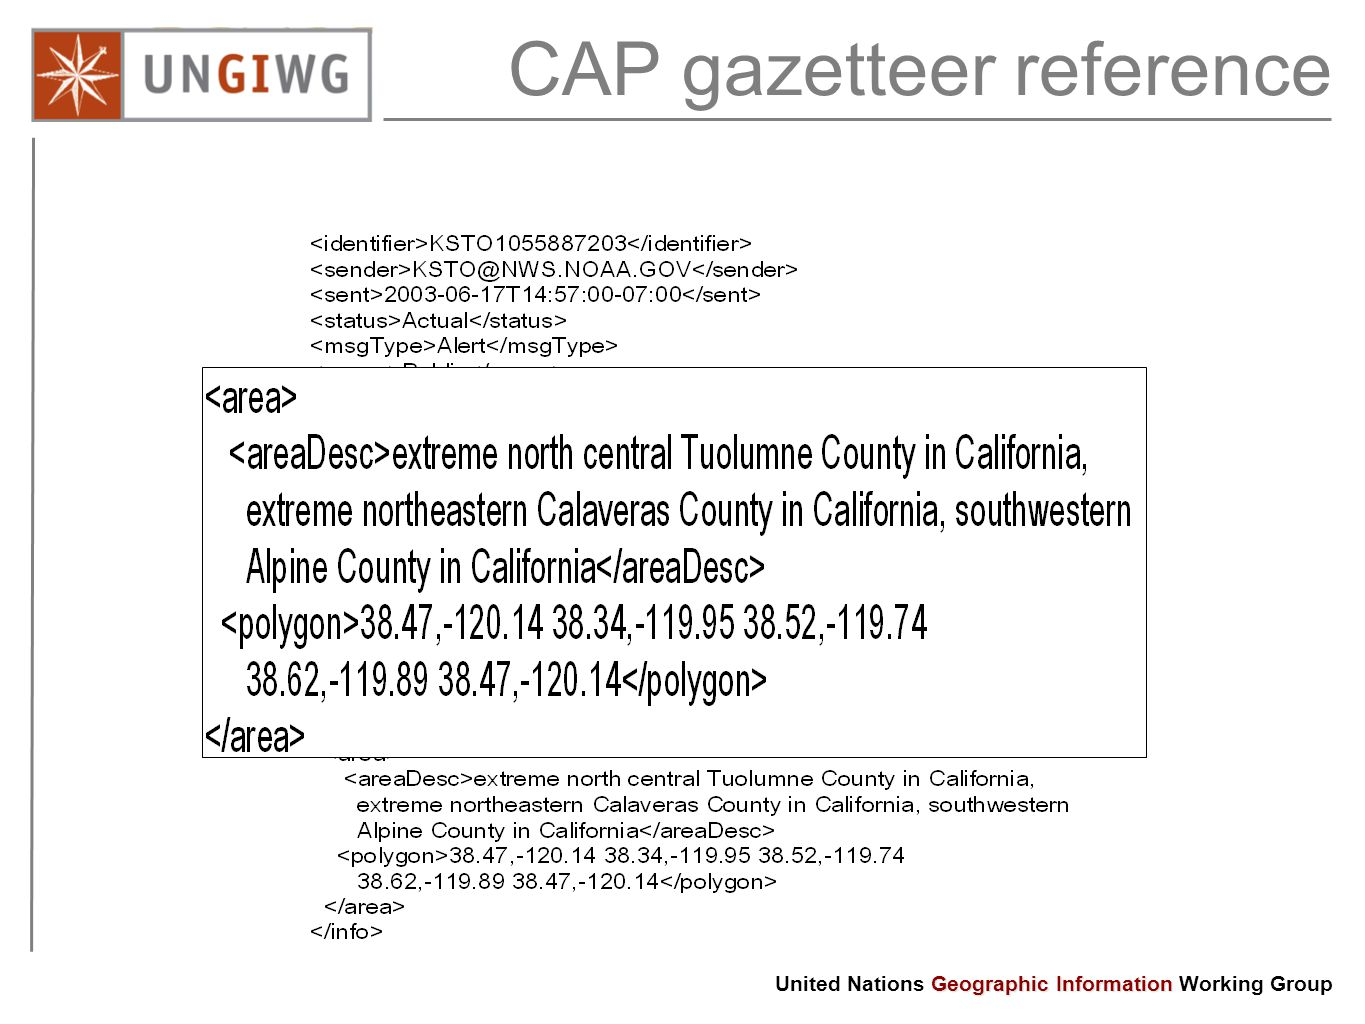 CAP gazetteer reference Any City / Province / Country Radio Television Fax Cell / SMS Sirens Storm Earthquake Fire Tsunami Volcano CAP Geographic Information United Nations Geographic Information Working Group